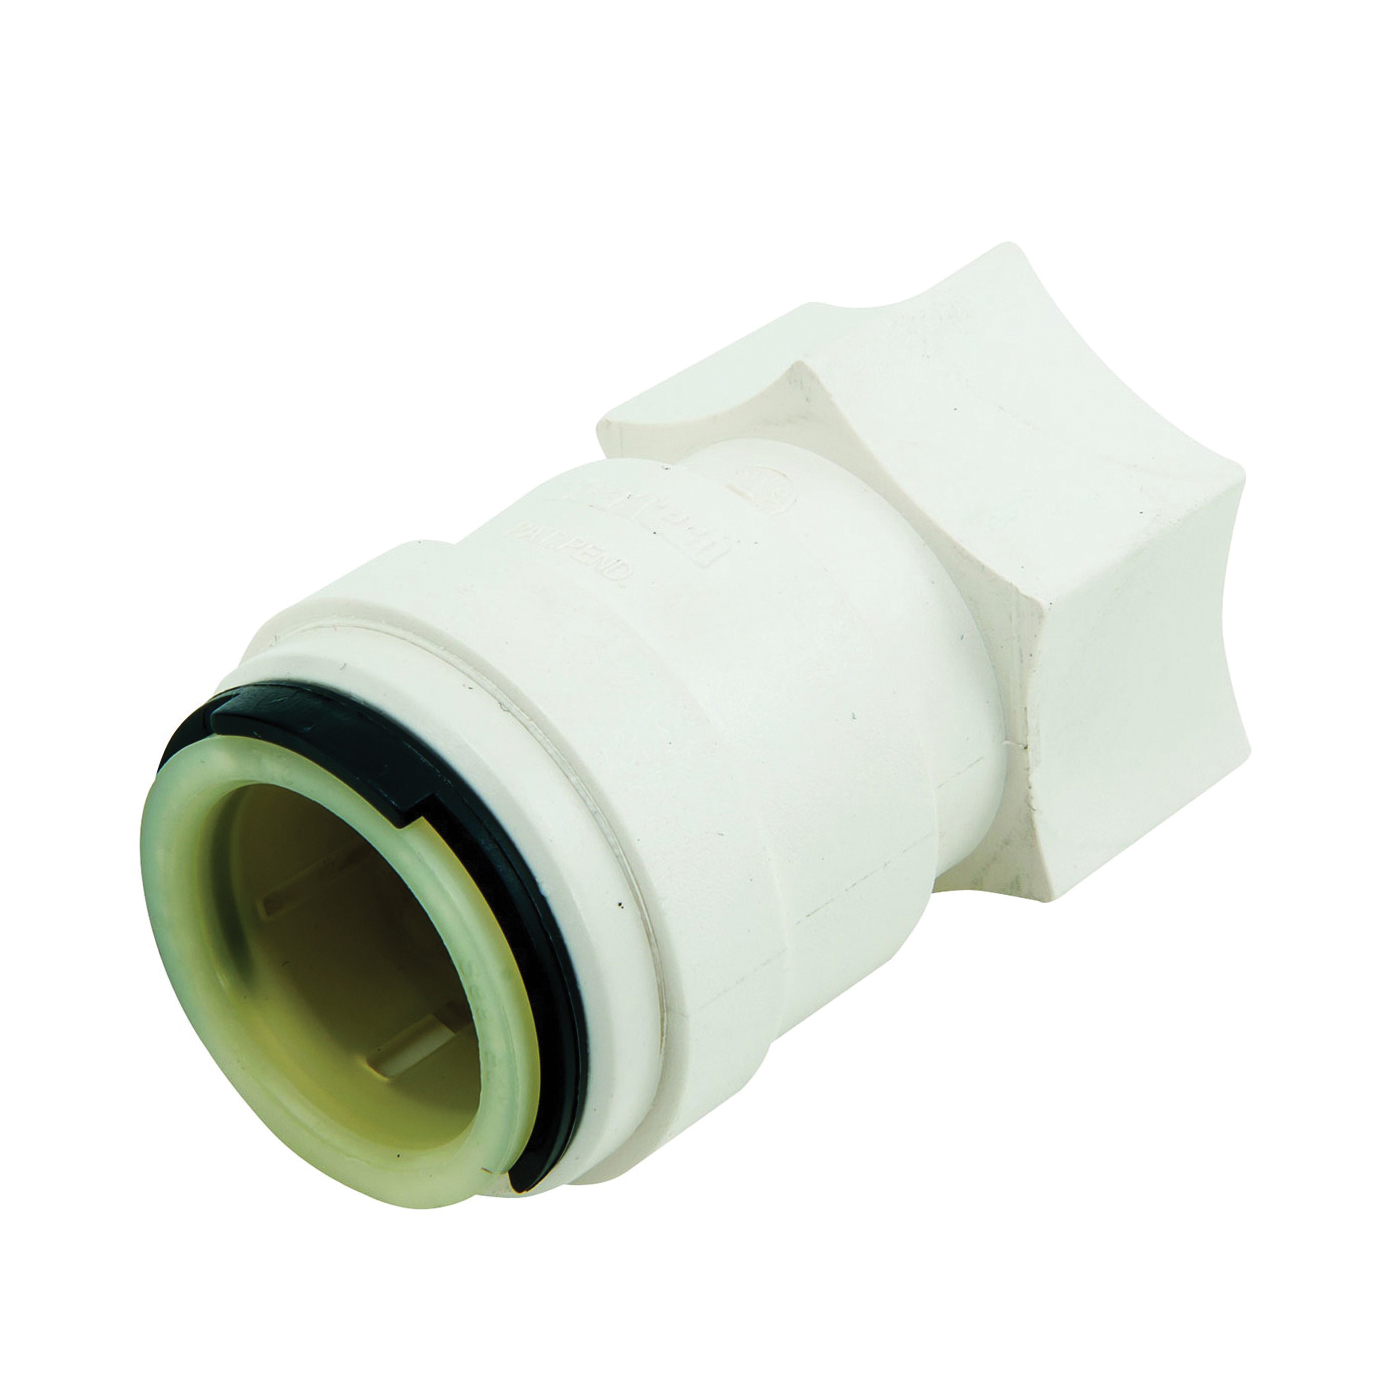 Picture of Watts 35 Series 3510-1816 Female Connector, 1 in CTS, 1 in NPS